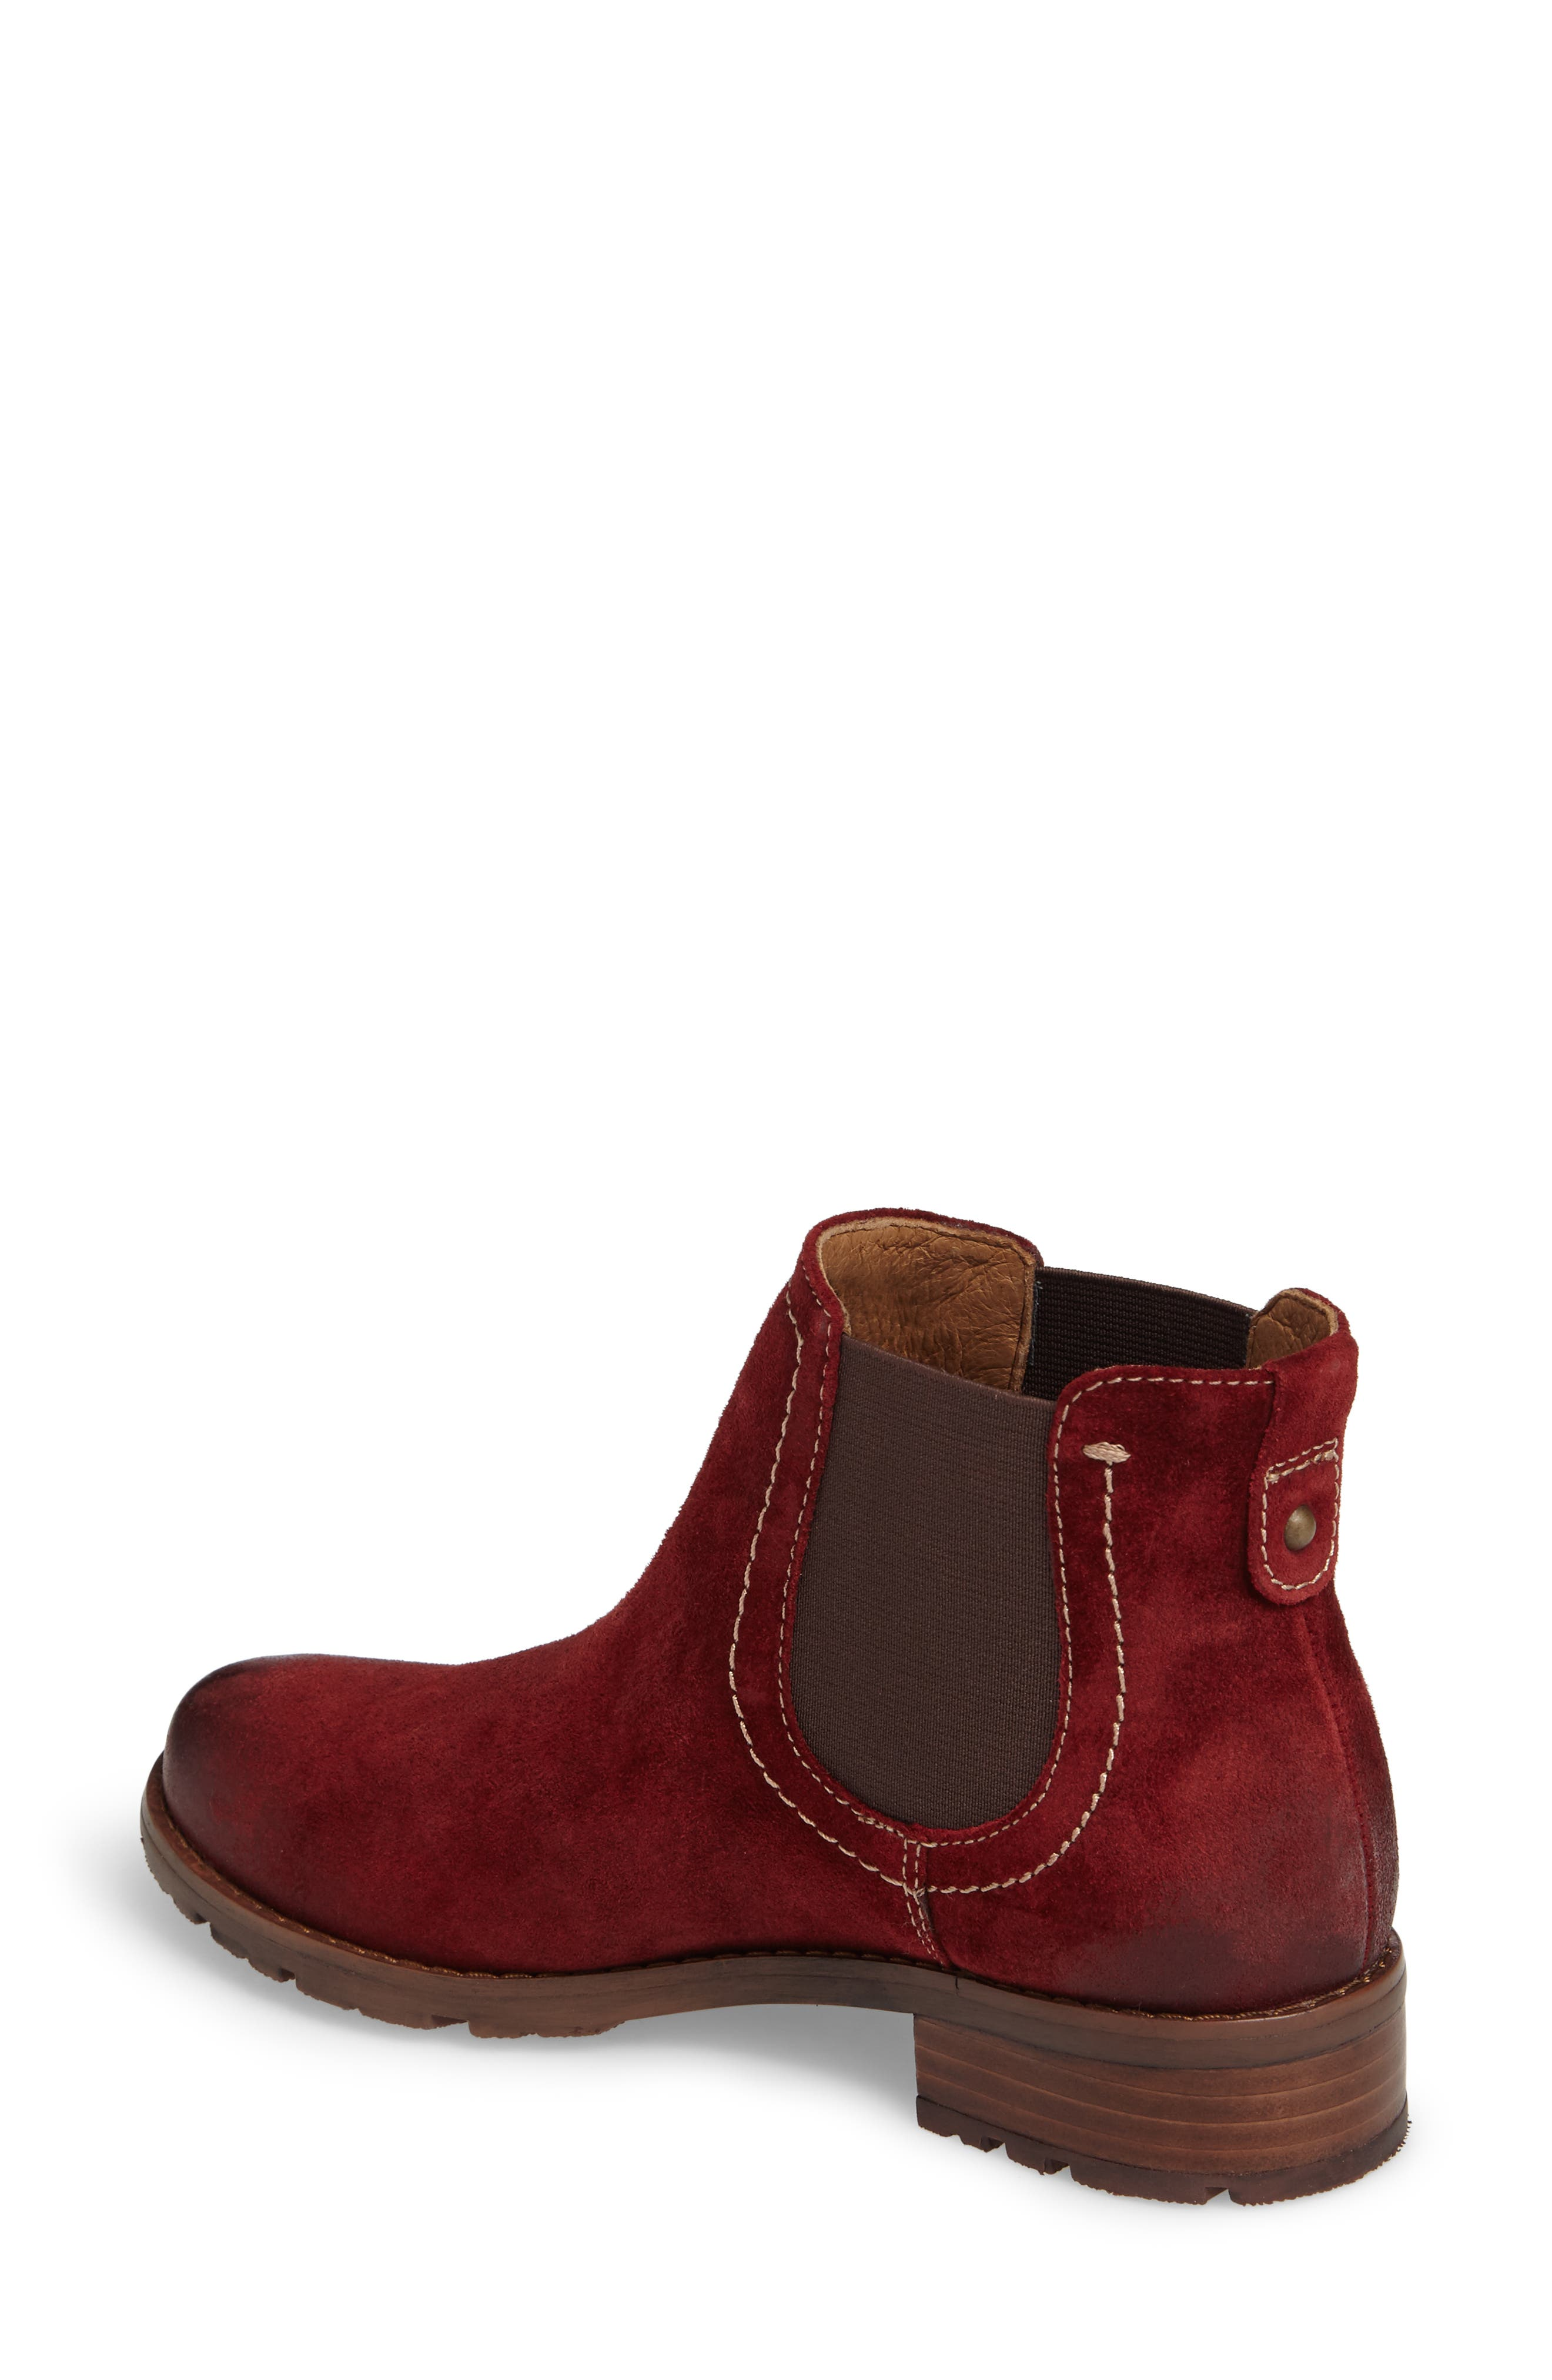 'Selby' Chelsea Bootie,                             Alternate thumbnail 2, color,                             Bordo Suede